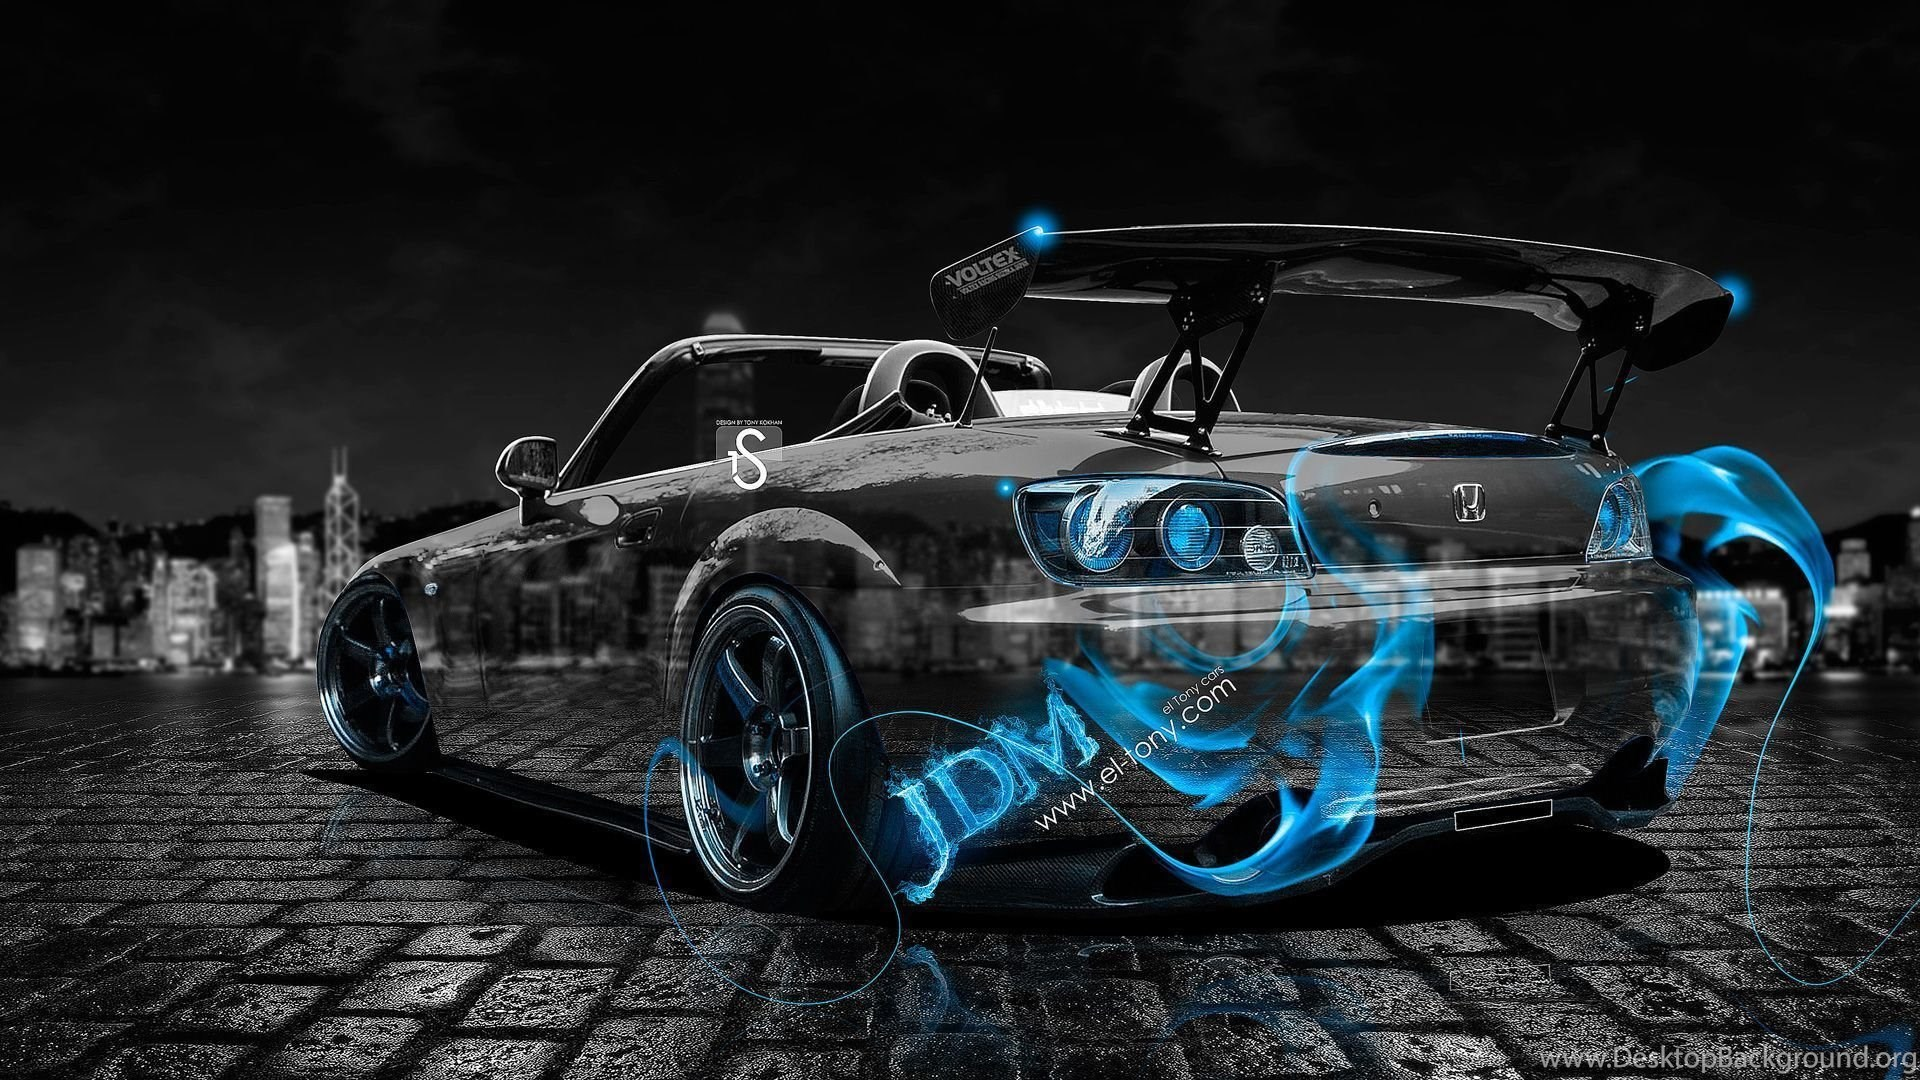 Incroyable Honda S2000 JDM Blue Fire Crystal Car 2013 HD Wallpapers Design  By Tony Kokhan Www